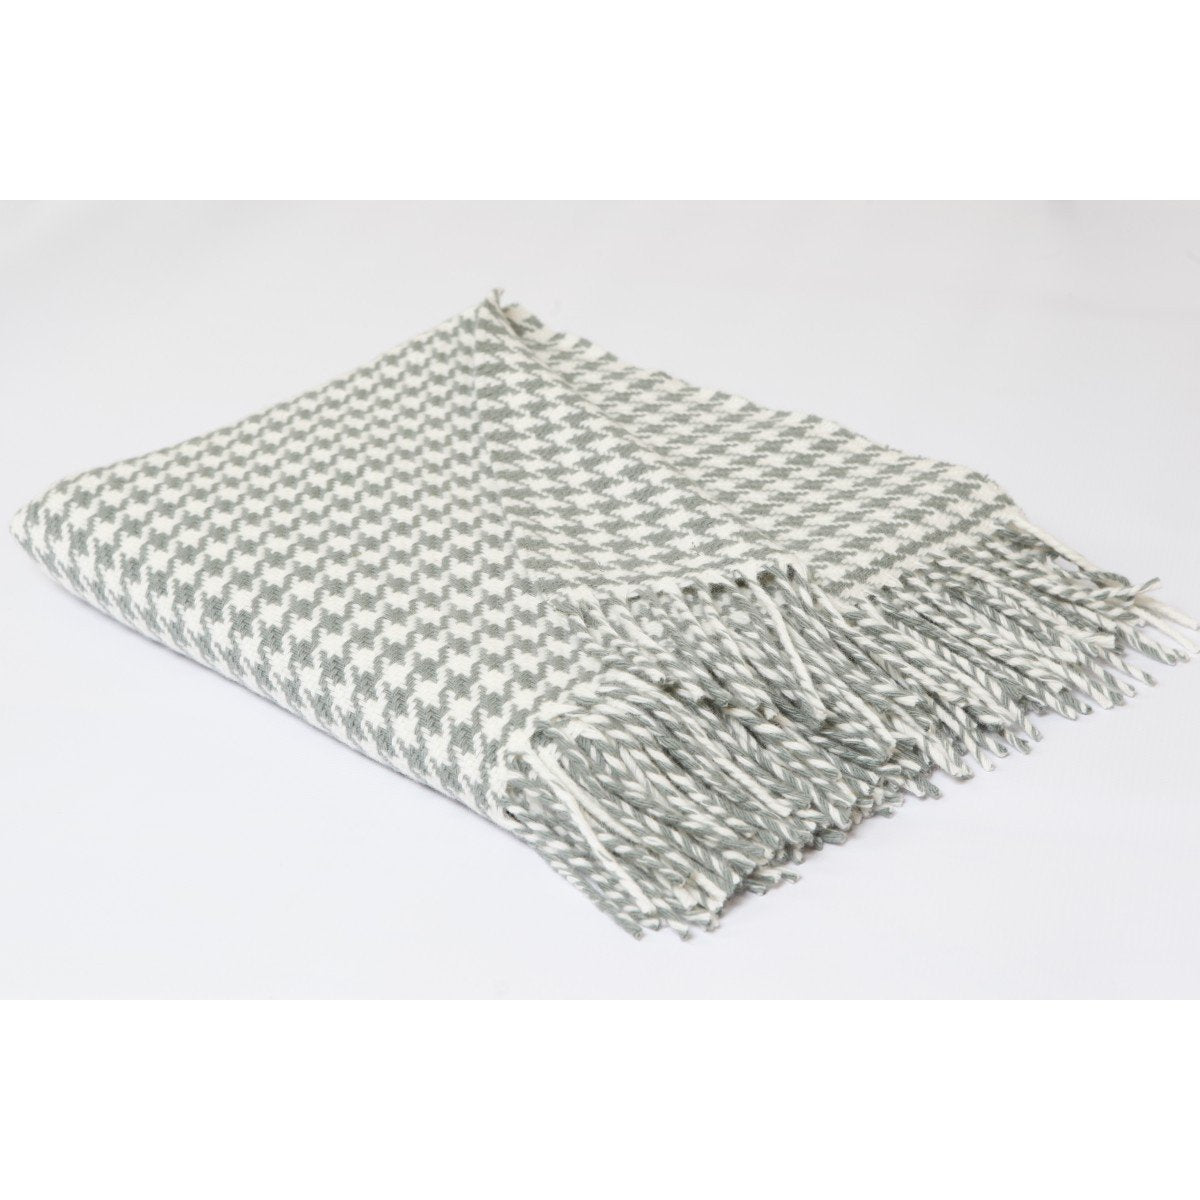 Grey & Cream Houndstooth Merino Wool Throw